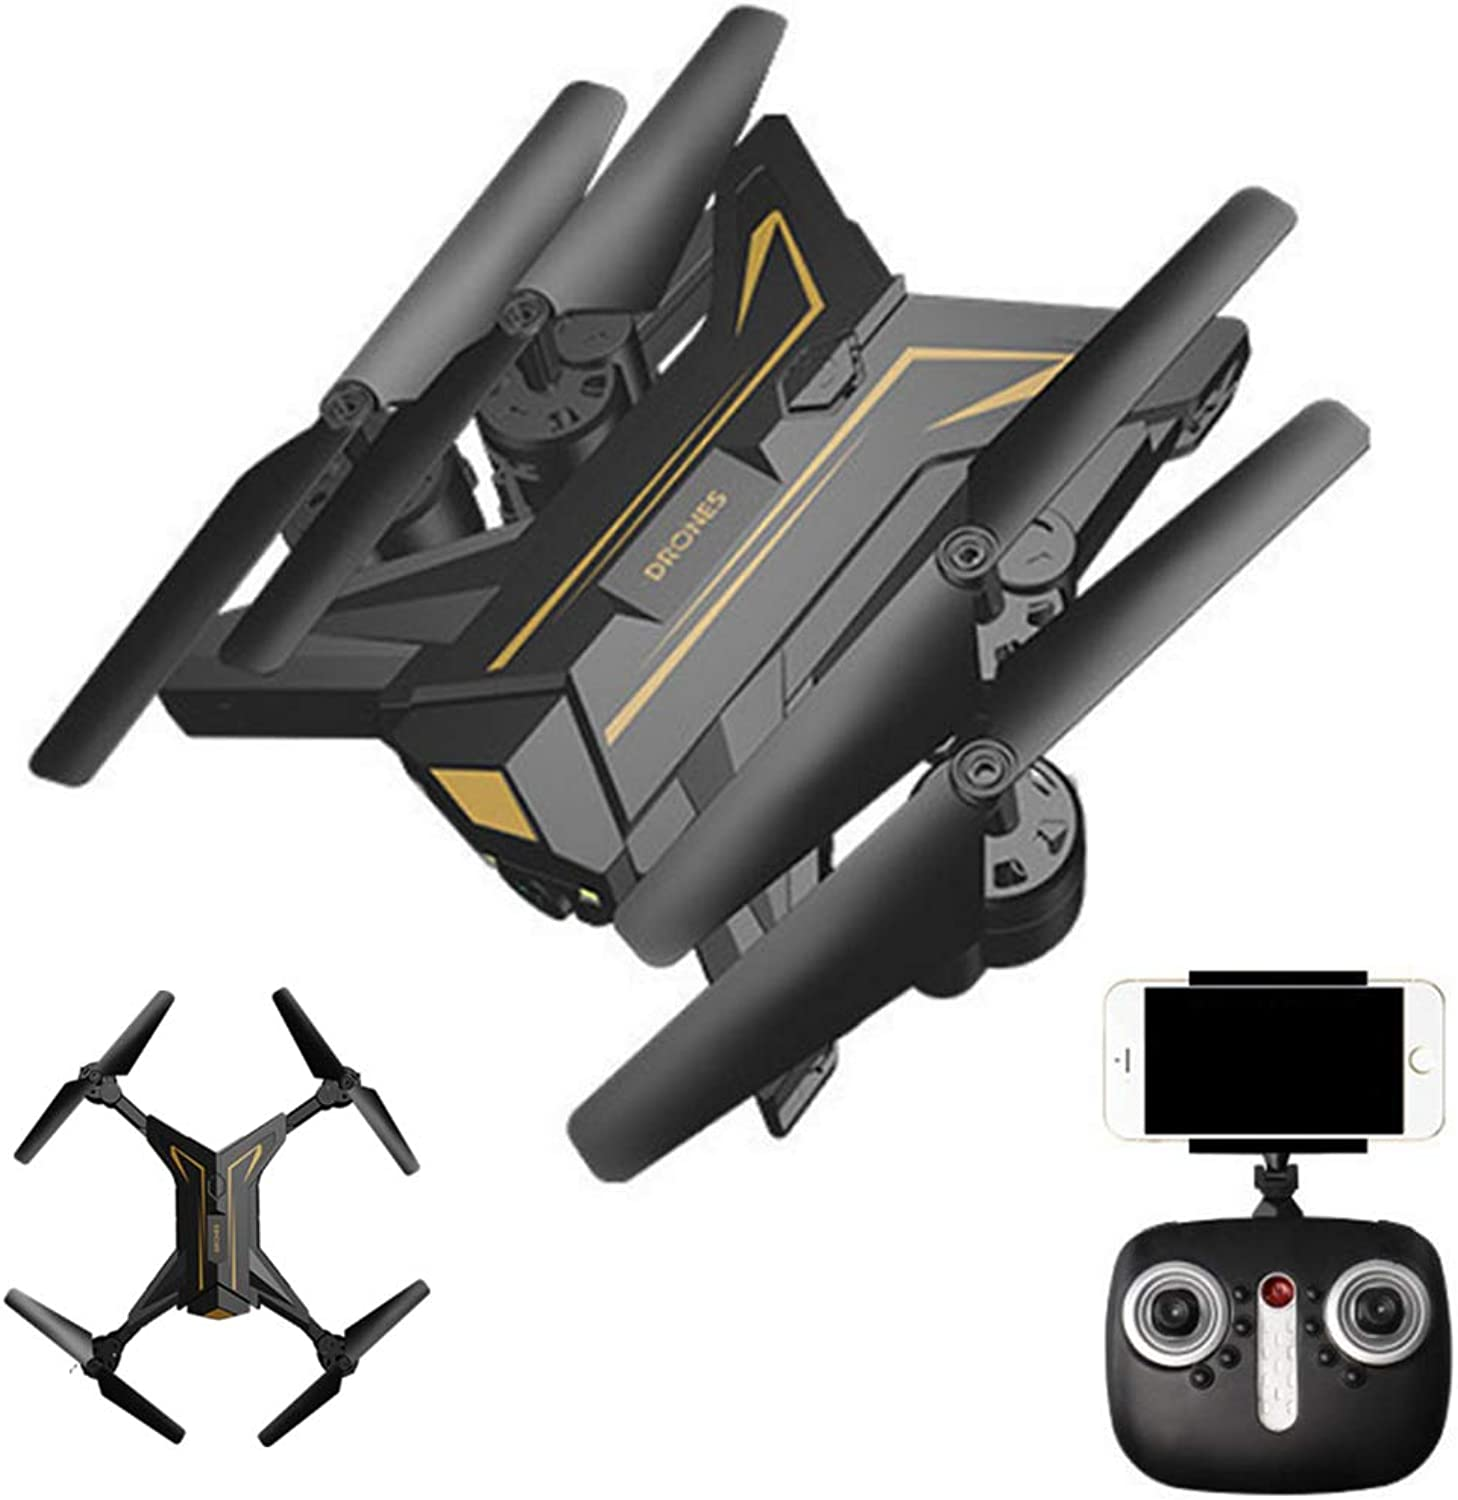 Mengen88 WiFi Realtime Transmission Remote Control Aircraft Wideangle Fxed Height FPV Folding Quadcopter Altitude Hold Stable 360degree flip Headless Mode